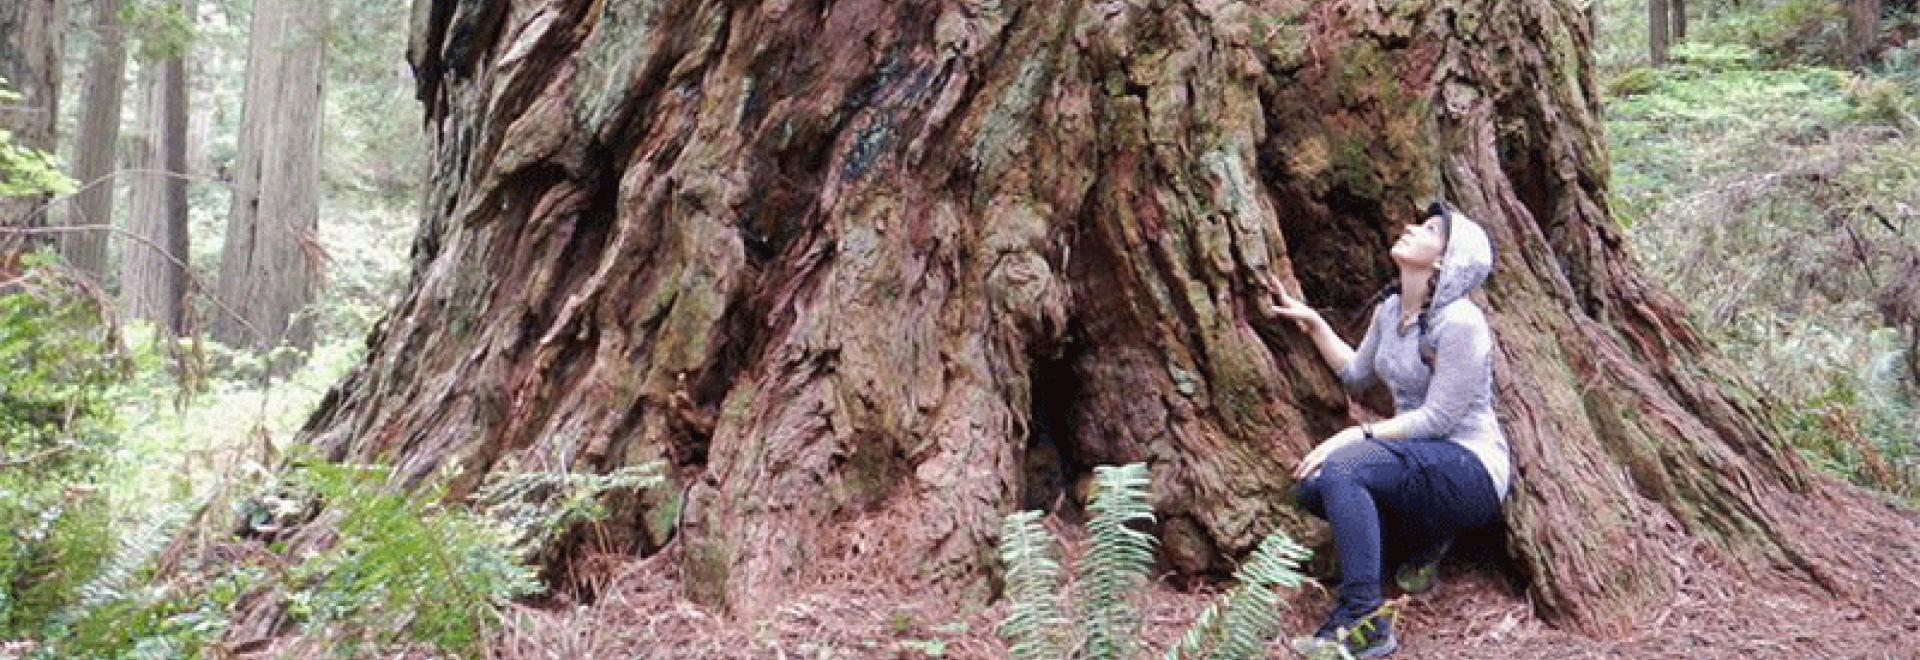 Young woman enjoying one of the massive old redwoods of Del Norte Redwoods State Park